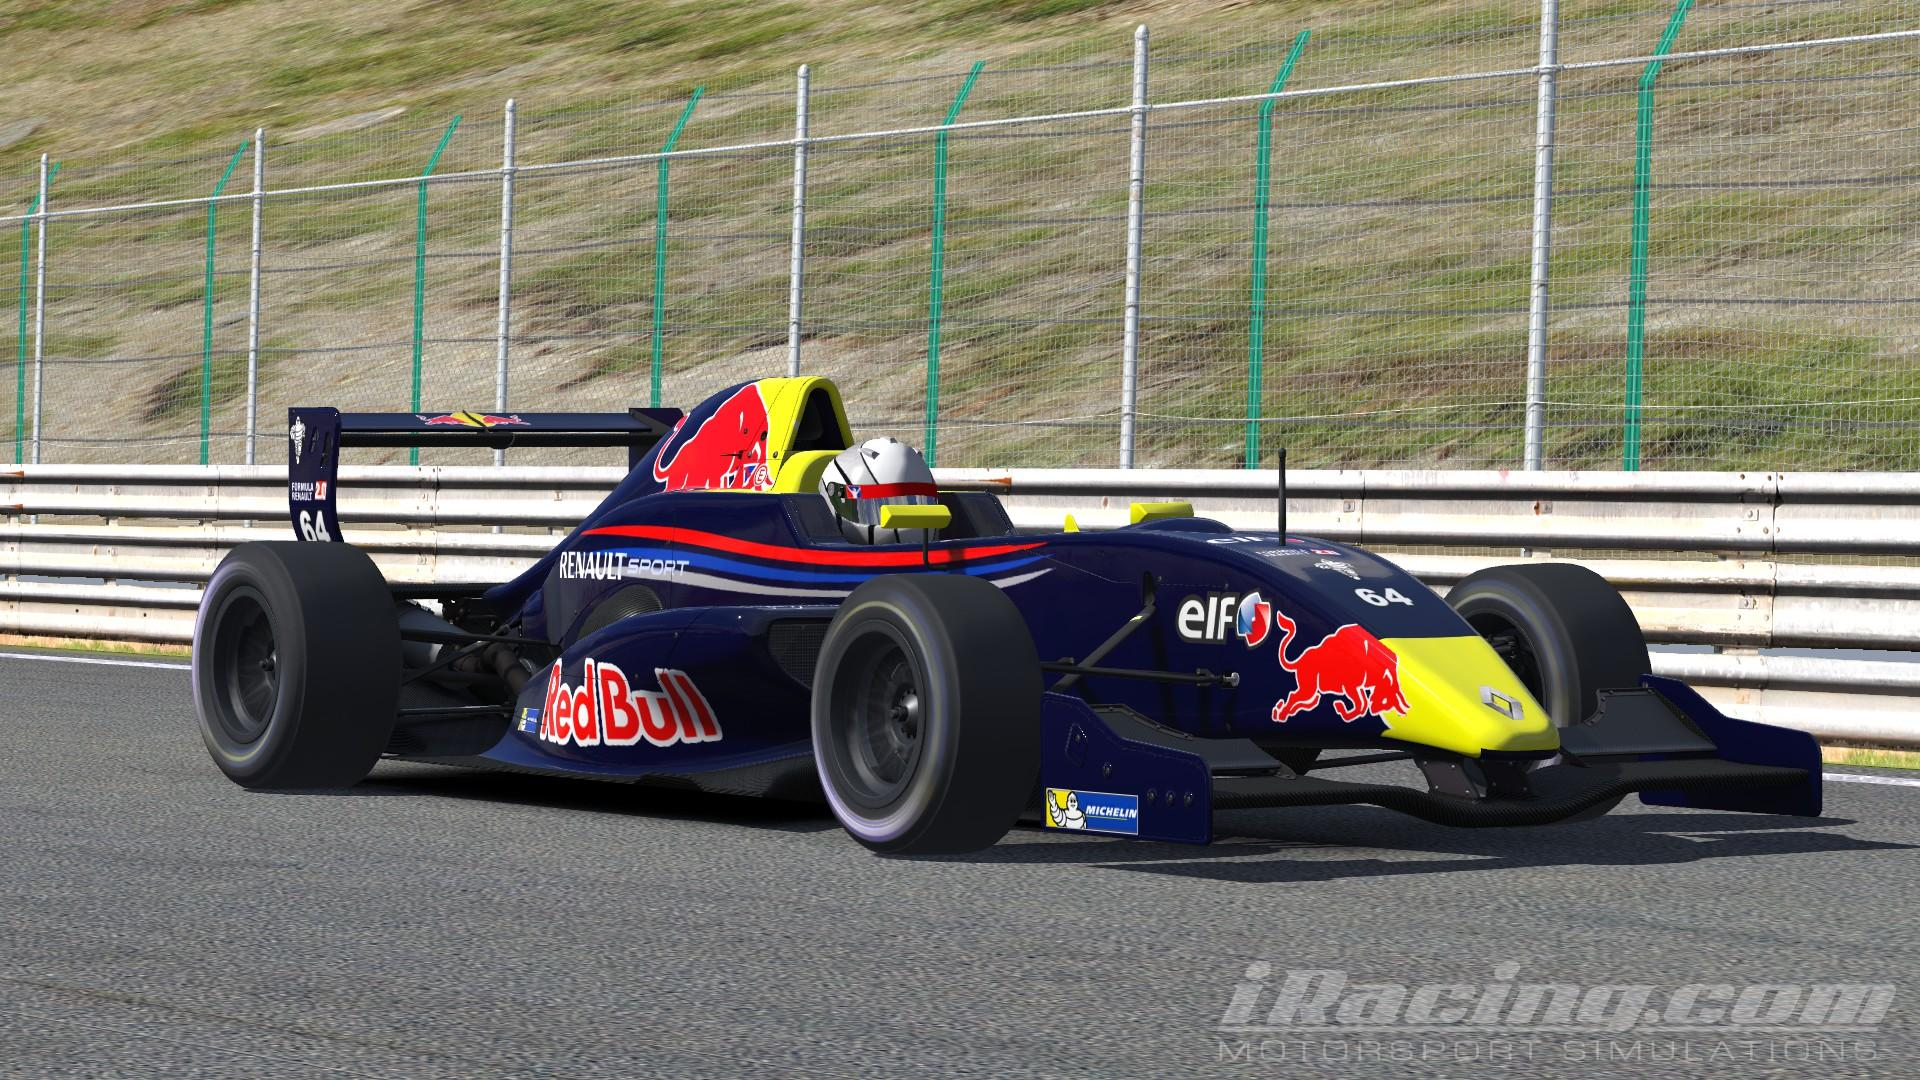 formula renault 2 0 red bull by coen klopman trading paints. Black Bedroom Furniture Sets. Home Design Ideas